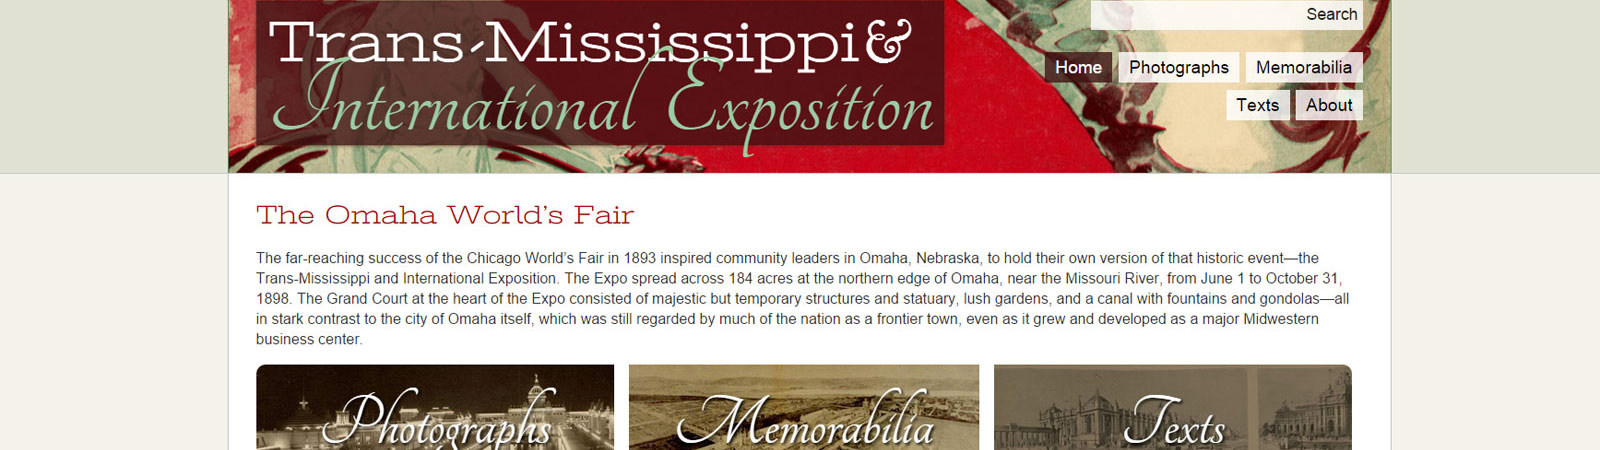 Transmississippi and International Exposition Digital Archive